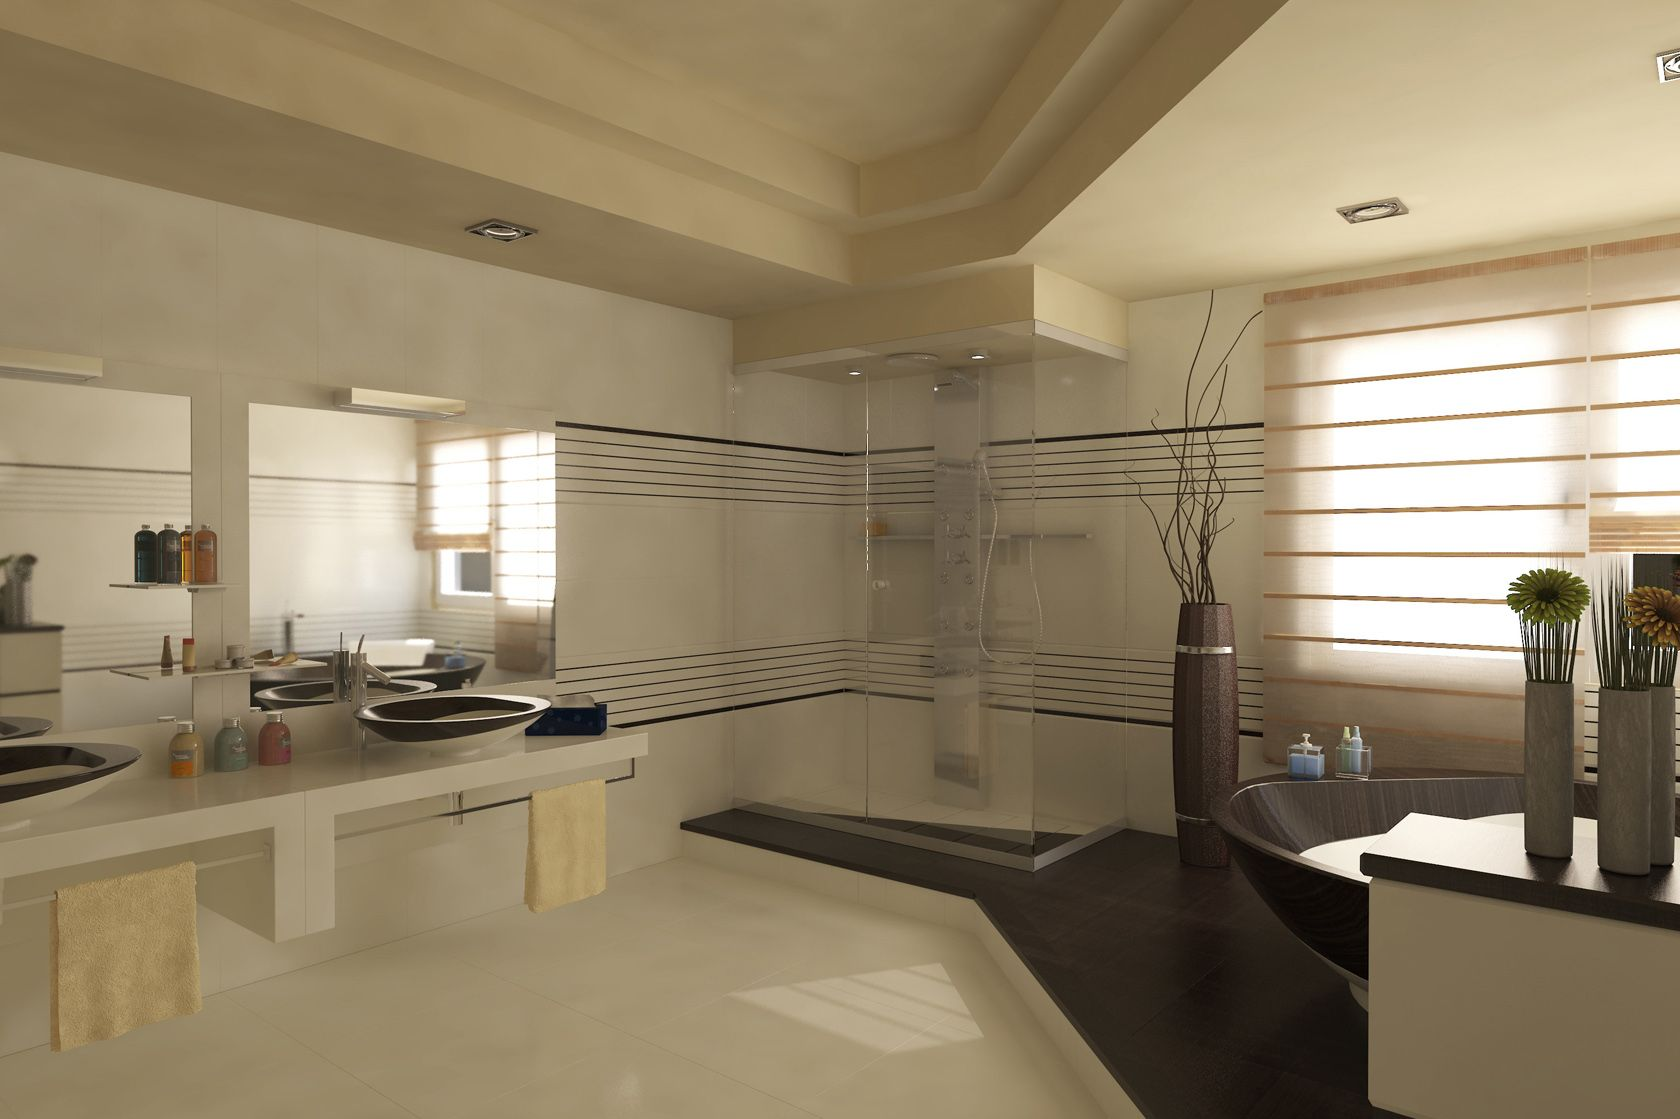 25 modern shower designs and glass enclosures modern bathroom design trends - Bathroom Design Ideas Italian